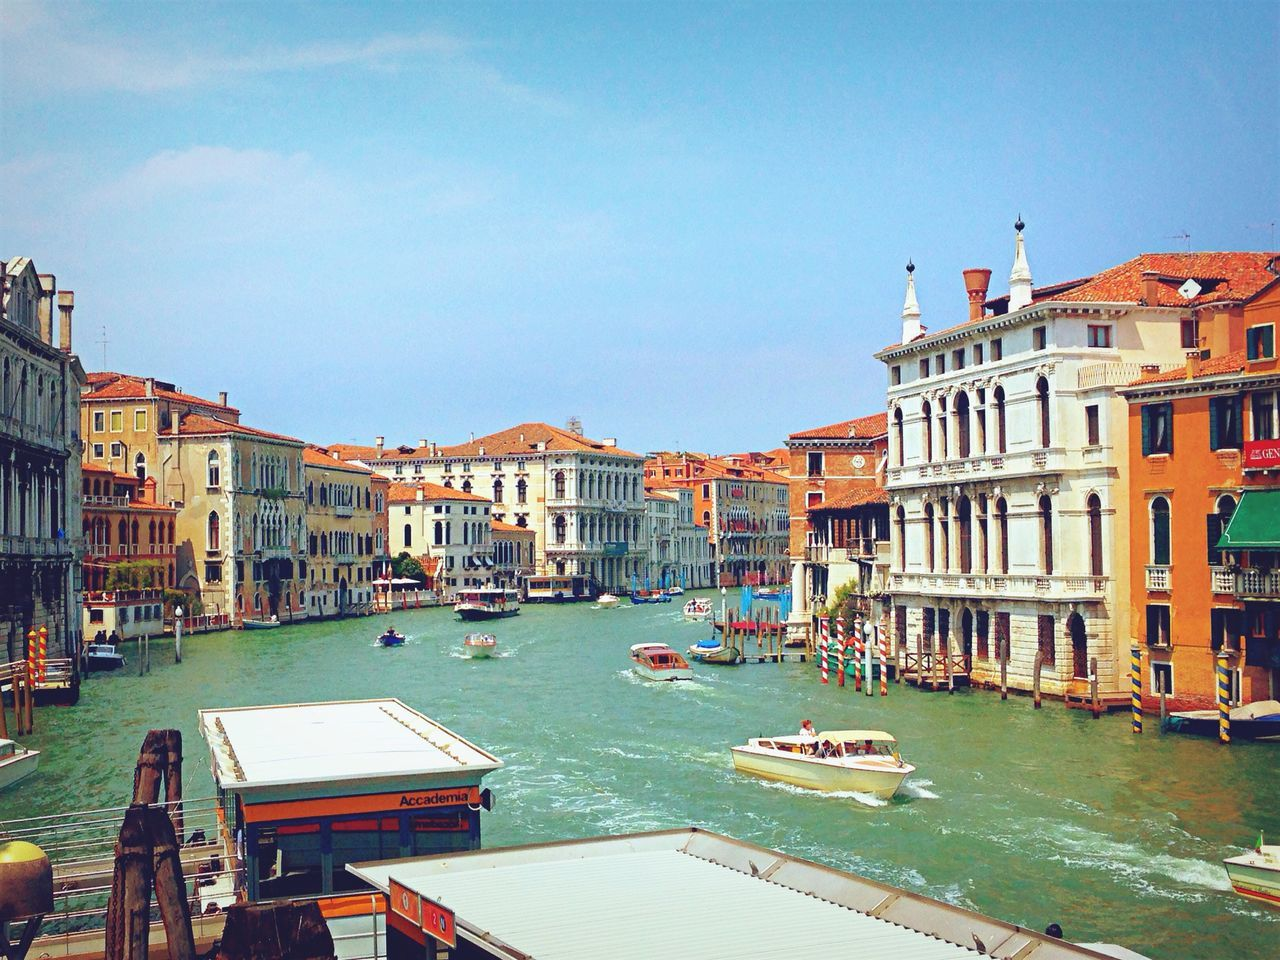 High Angle View Of Boats Sailing On Grand Canal In City